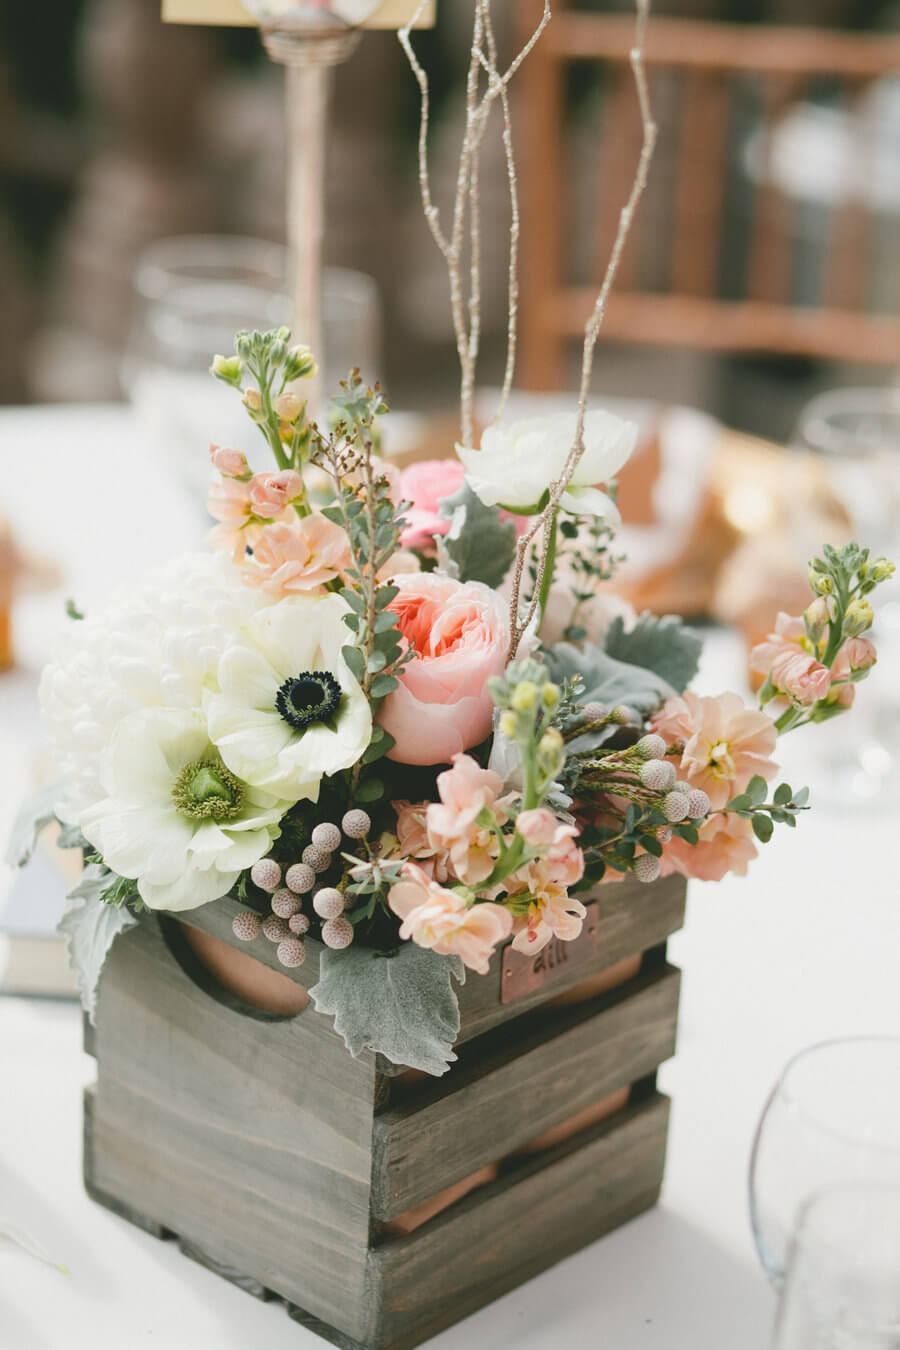 25 Best Rustic Wooden Box Centerpiece Ideas And Designs